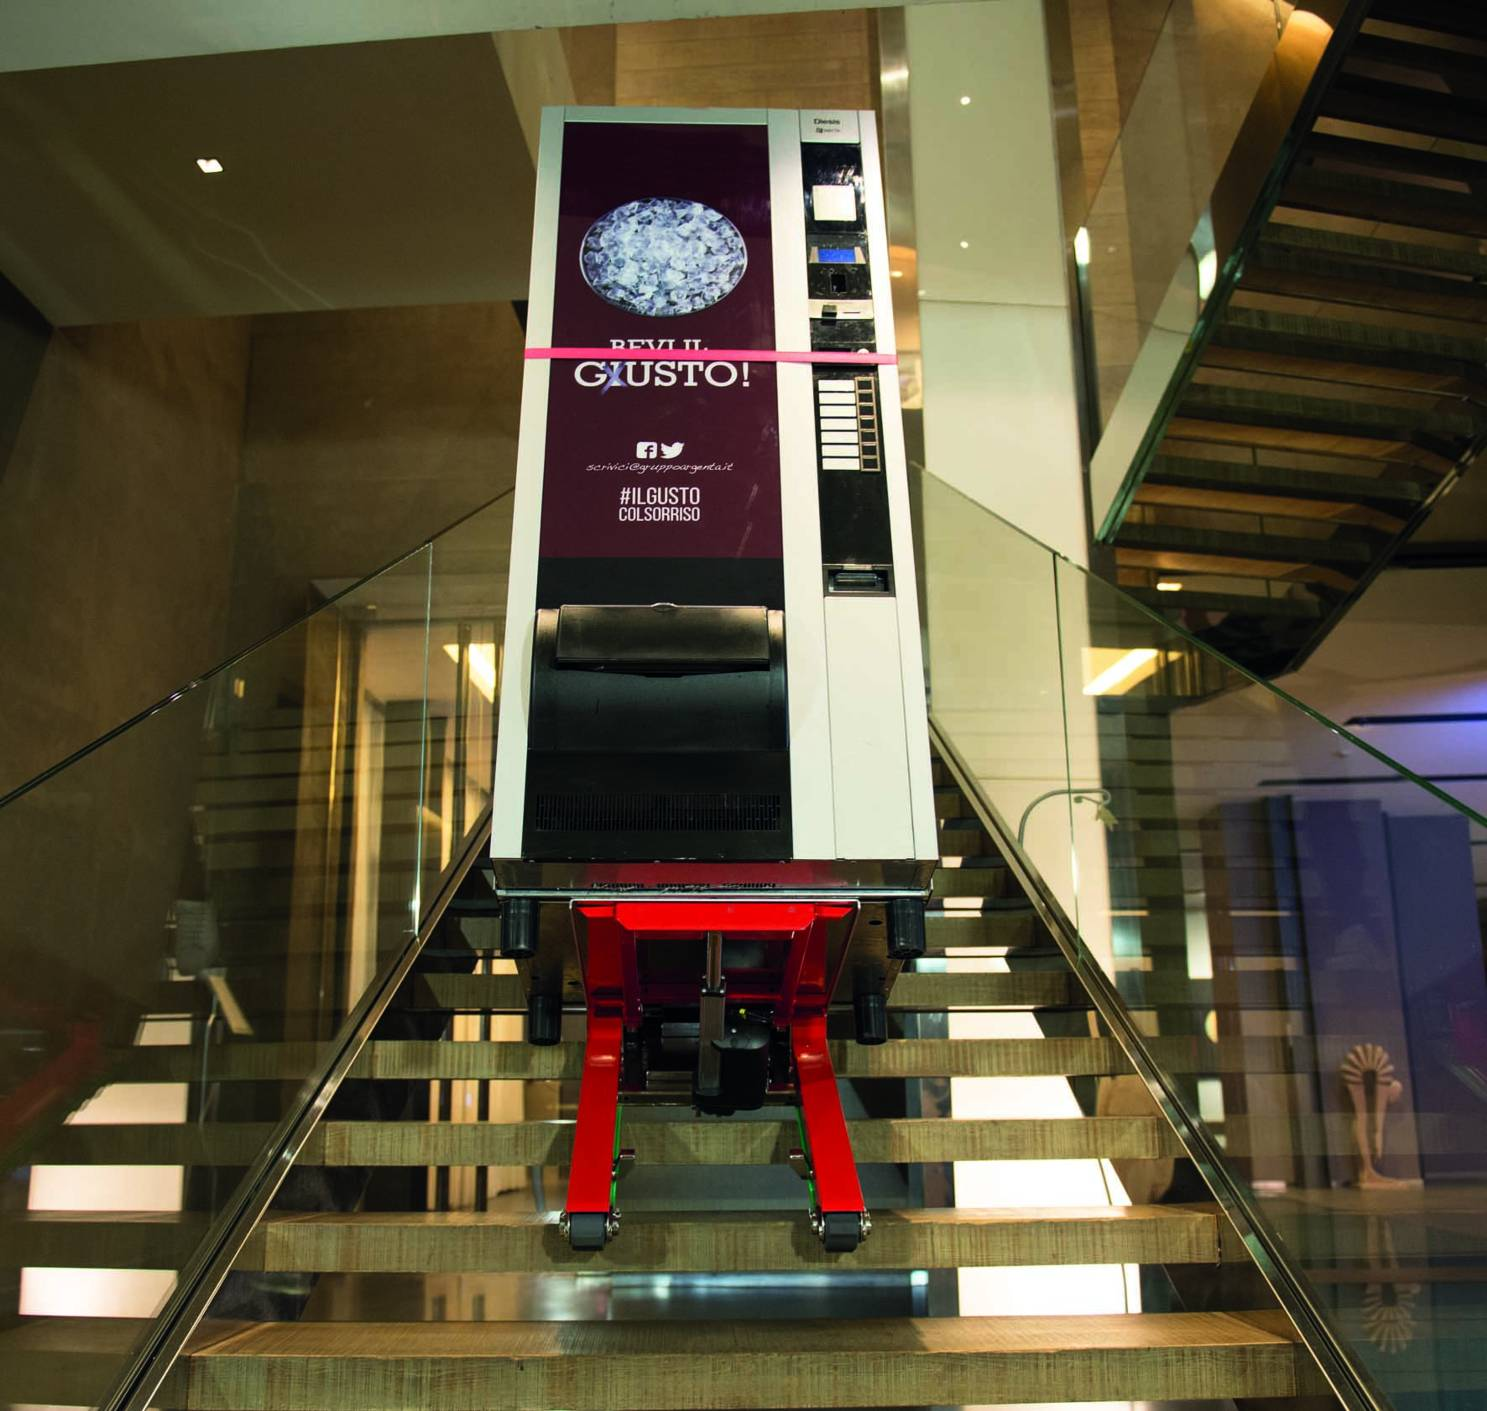 stairclimbing-trolley-domino-automatic-vending-machine-zonzini